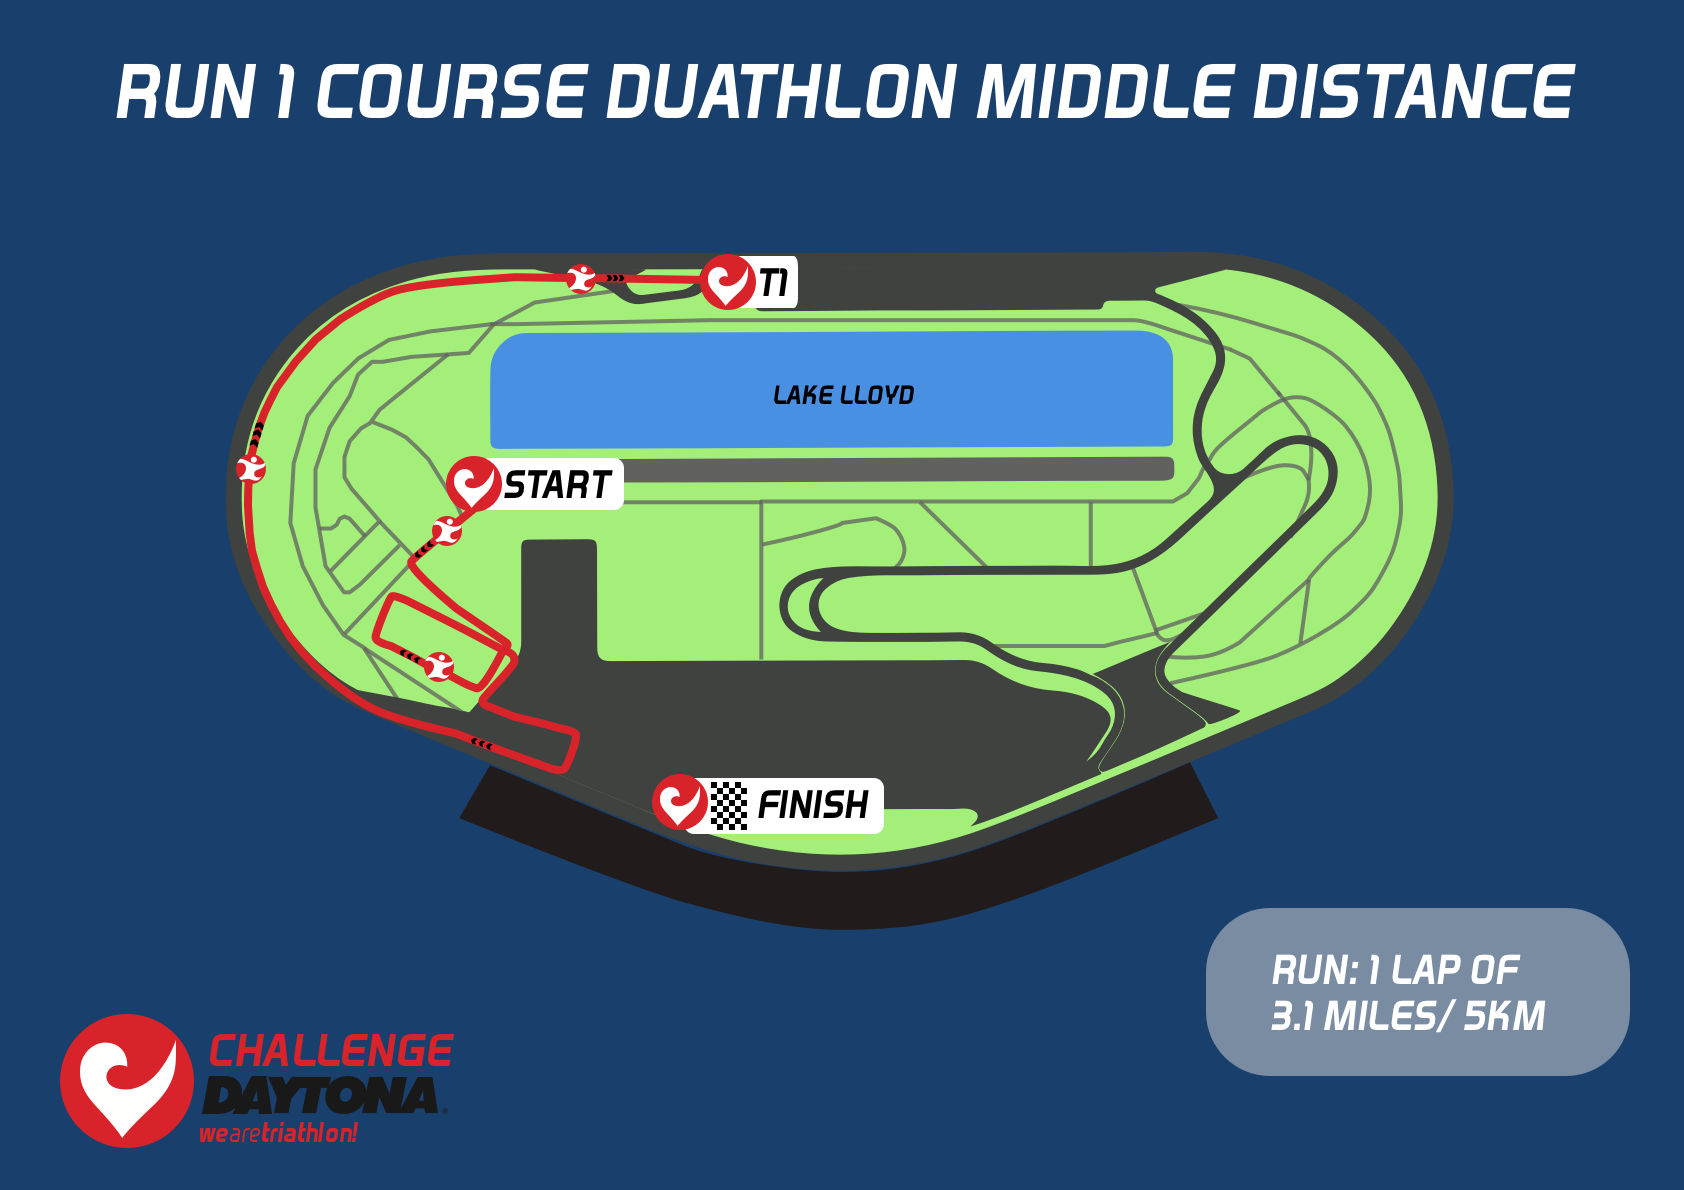 Duathlon Middle Distance